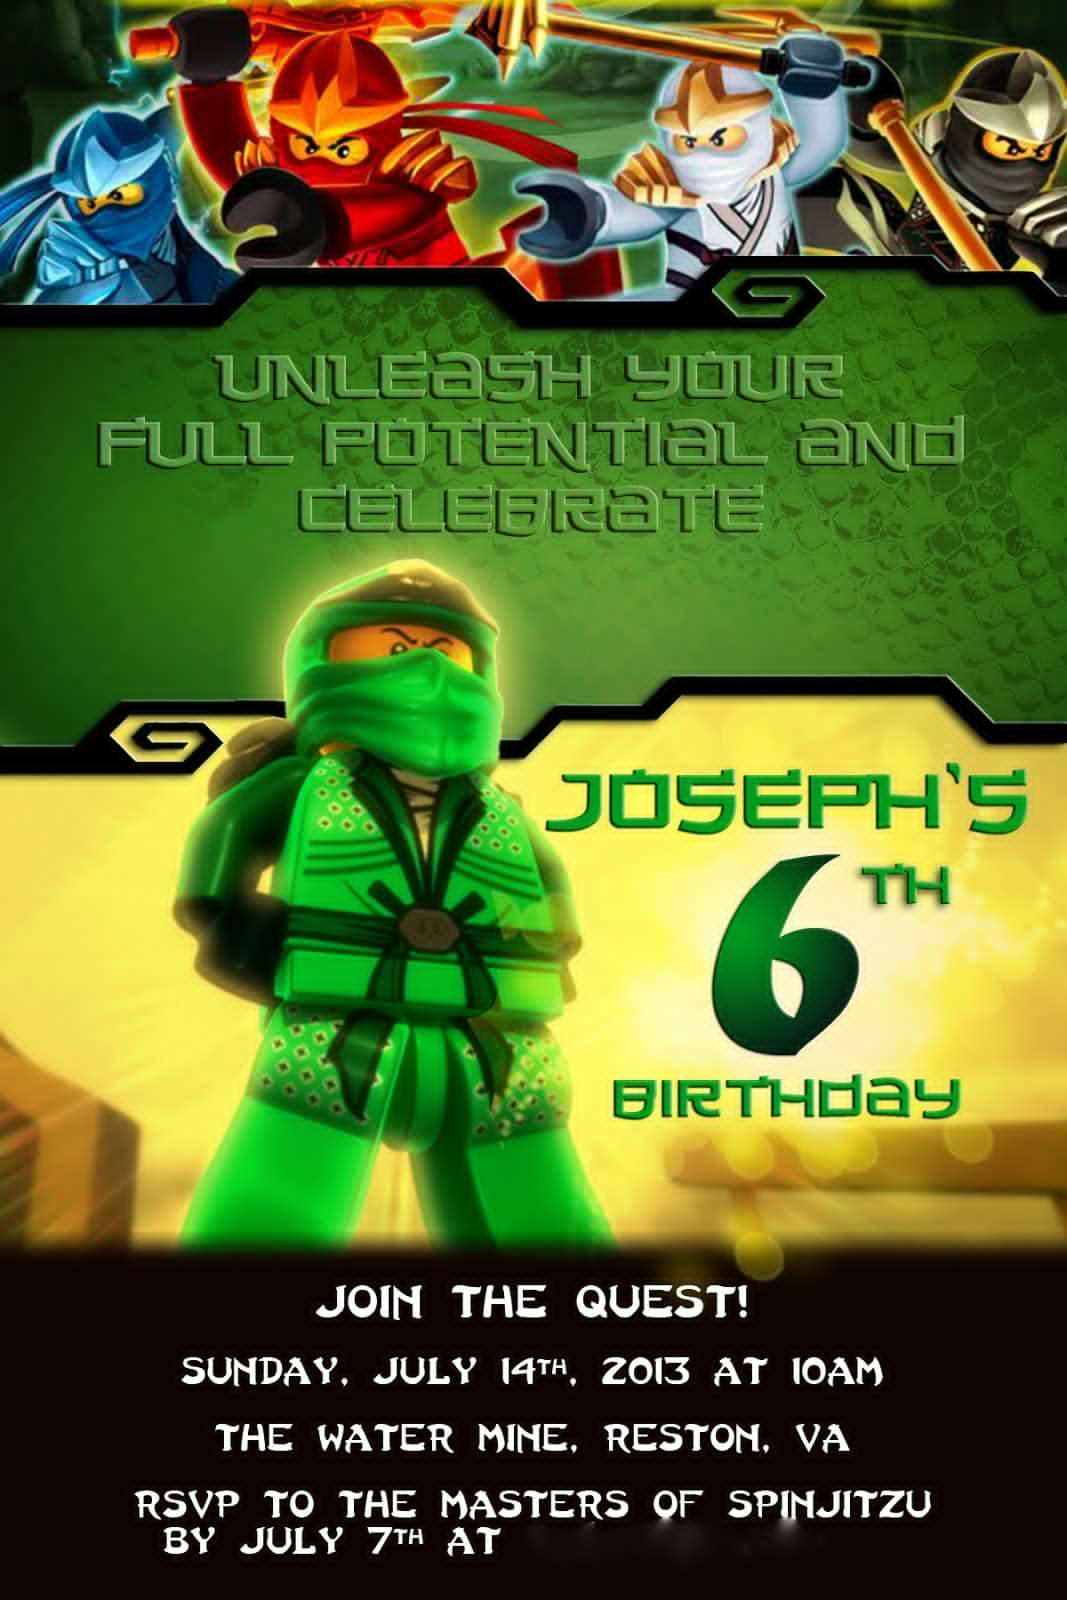 Lego Ninjago Party Invitations Free – Royyet - Lego Ninjago Party Invitations Printable Free